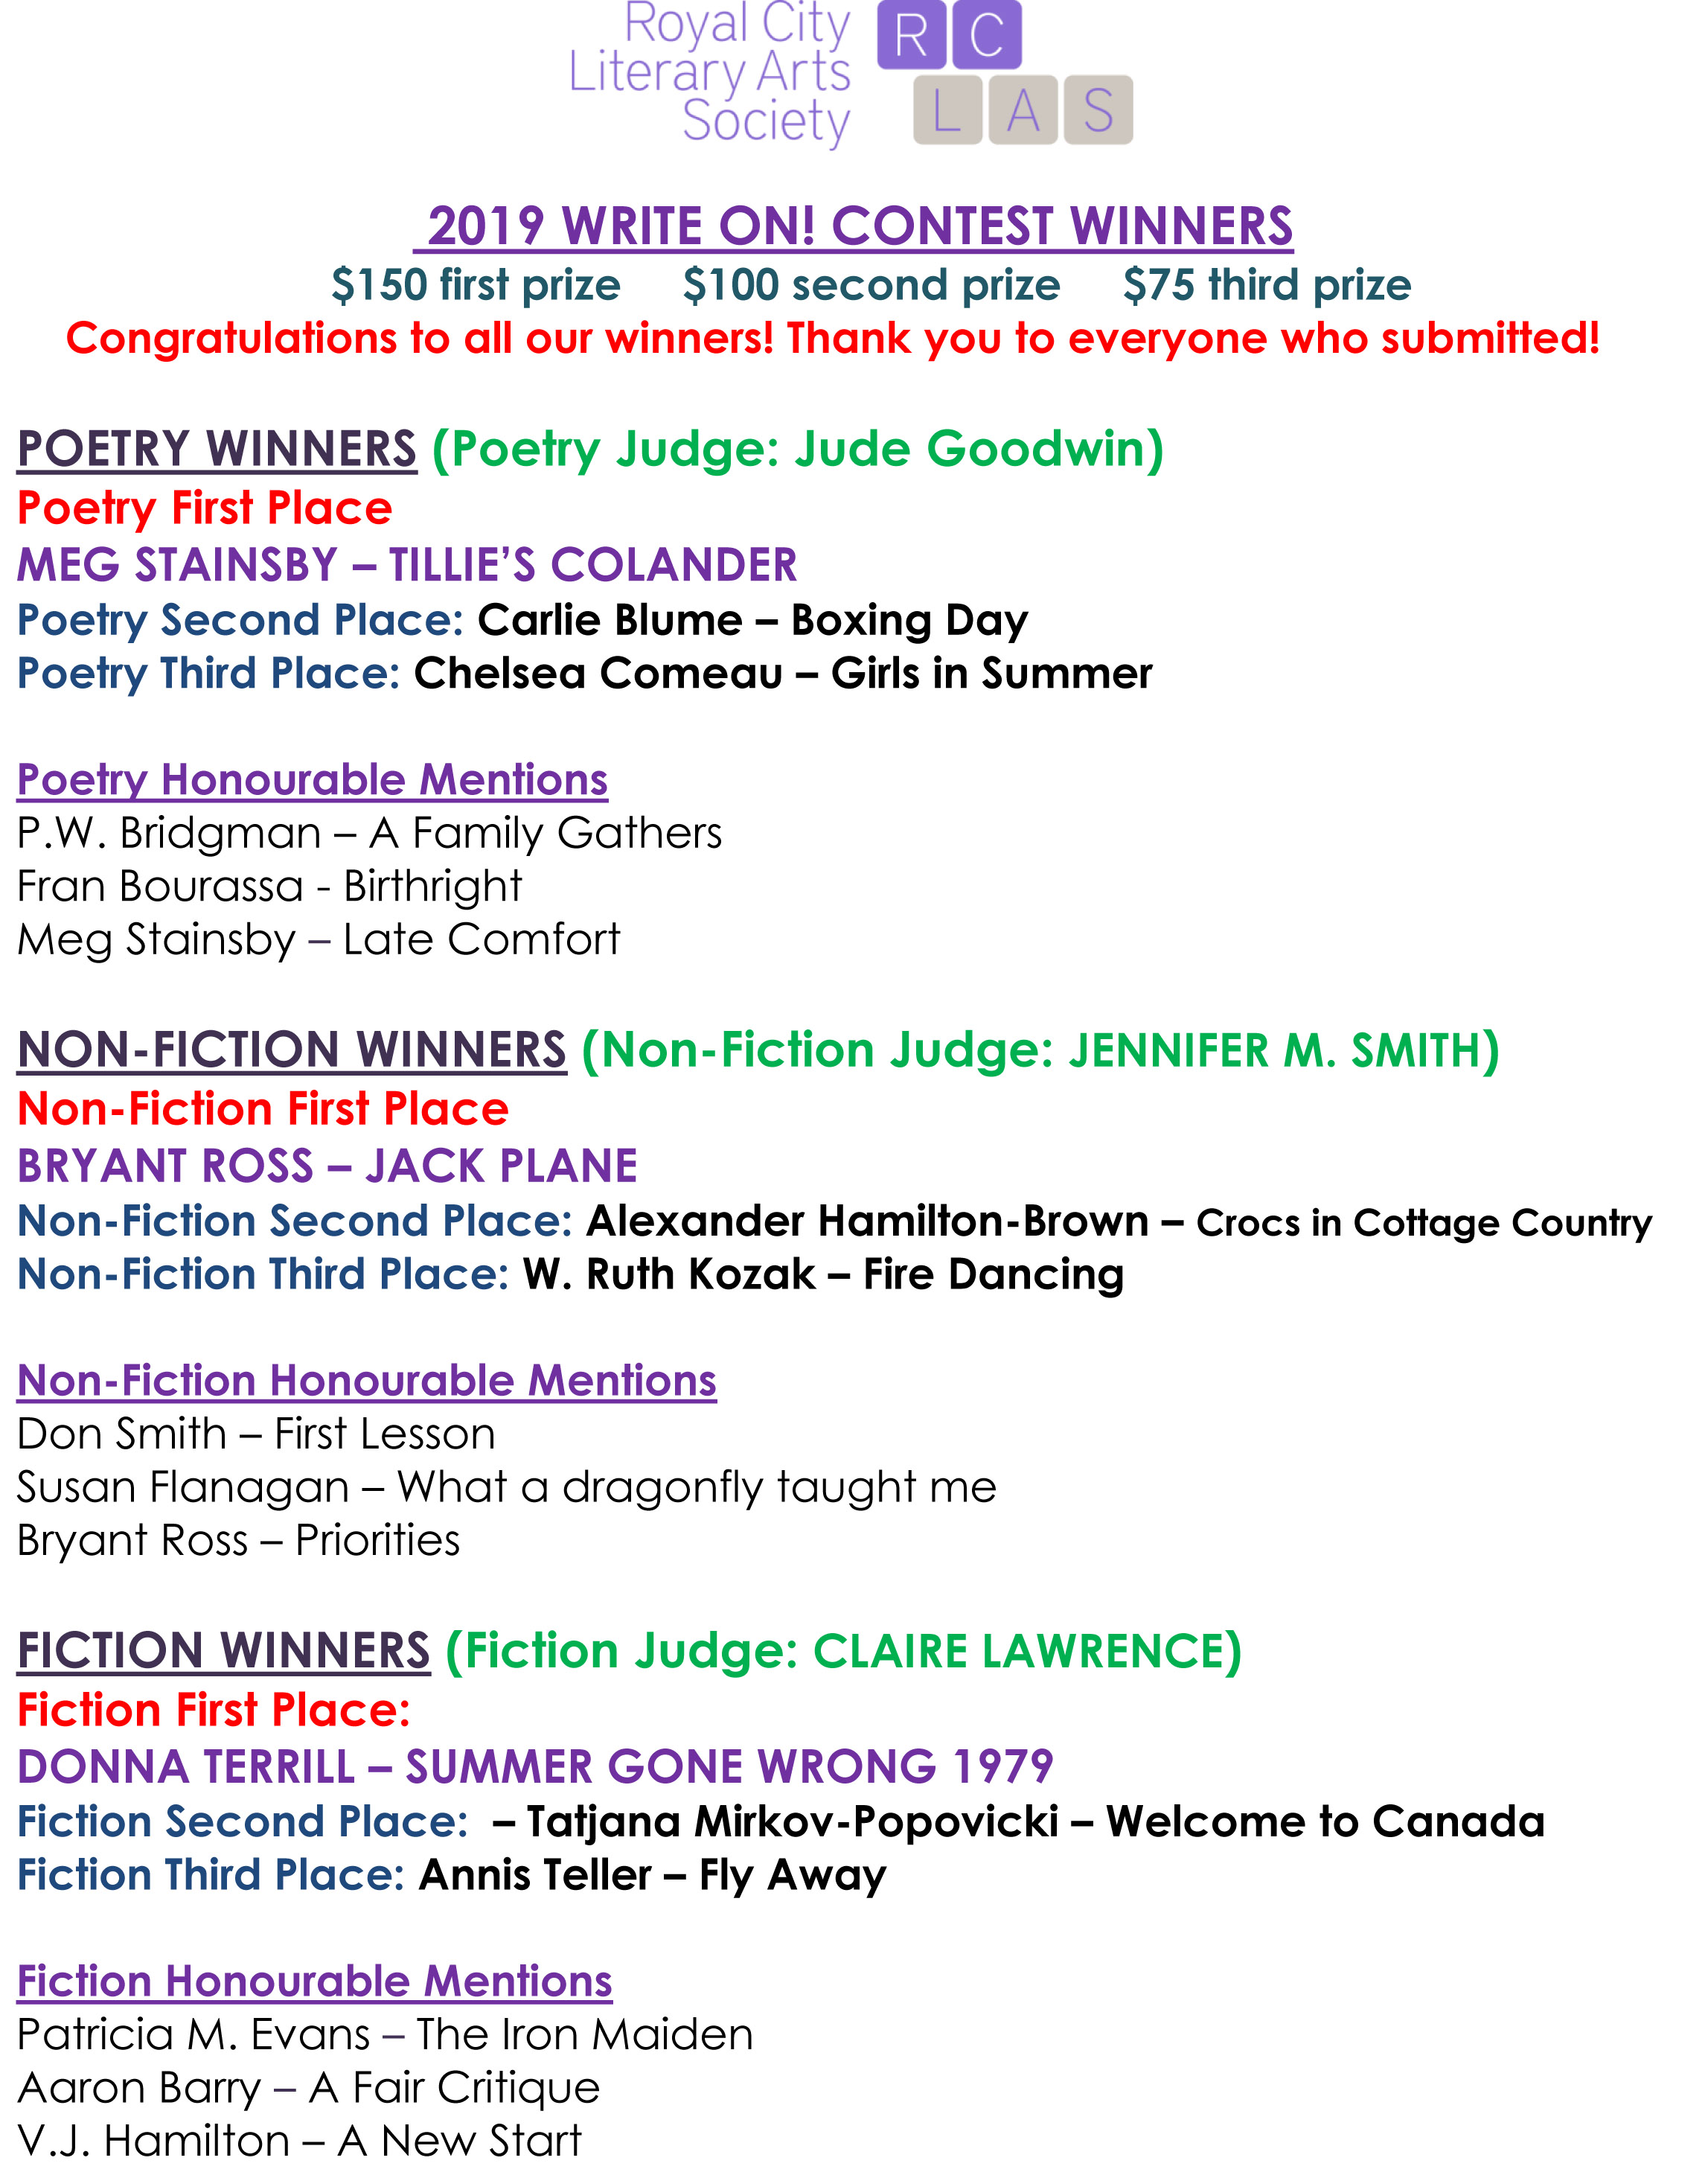 RCLAS Write on Contest 2019 WINNERS AND HM's (3).jpg